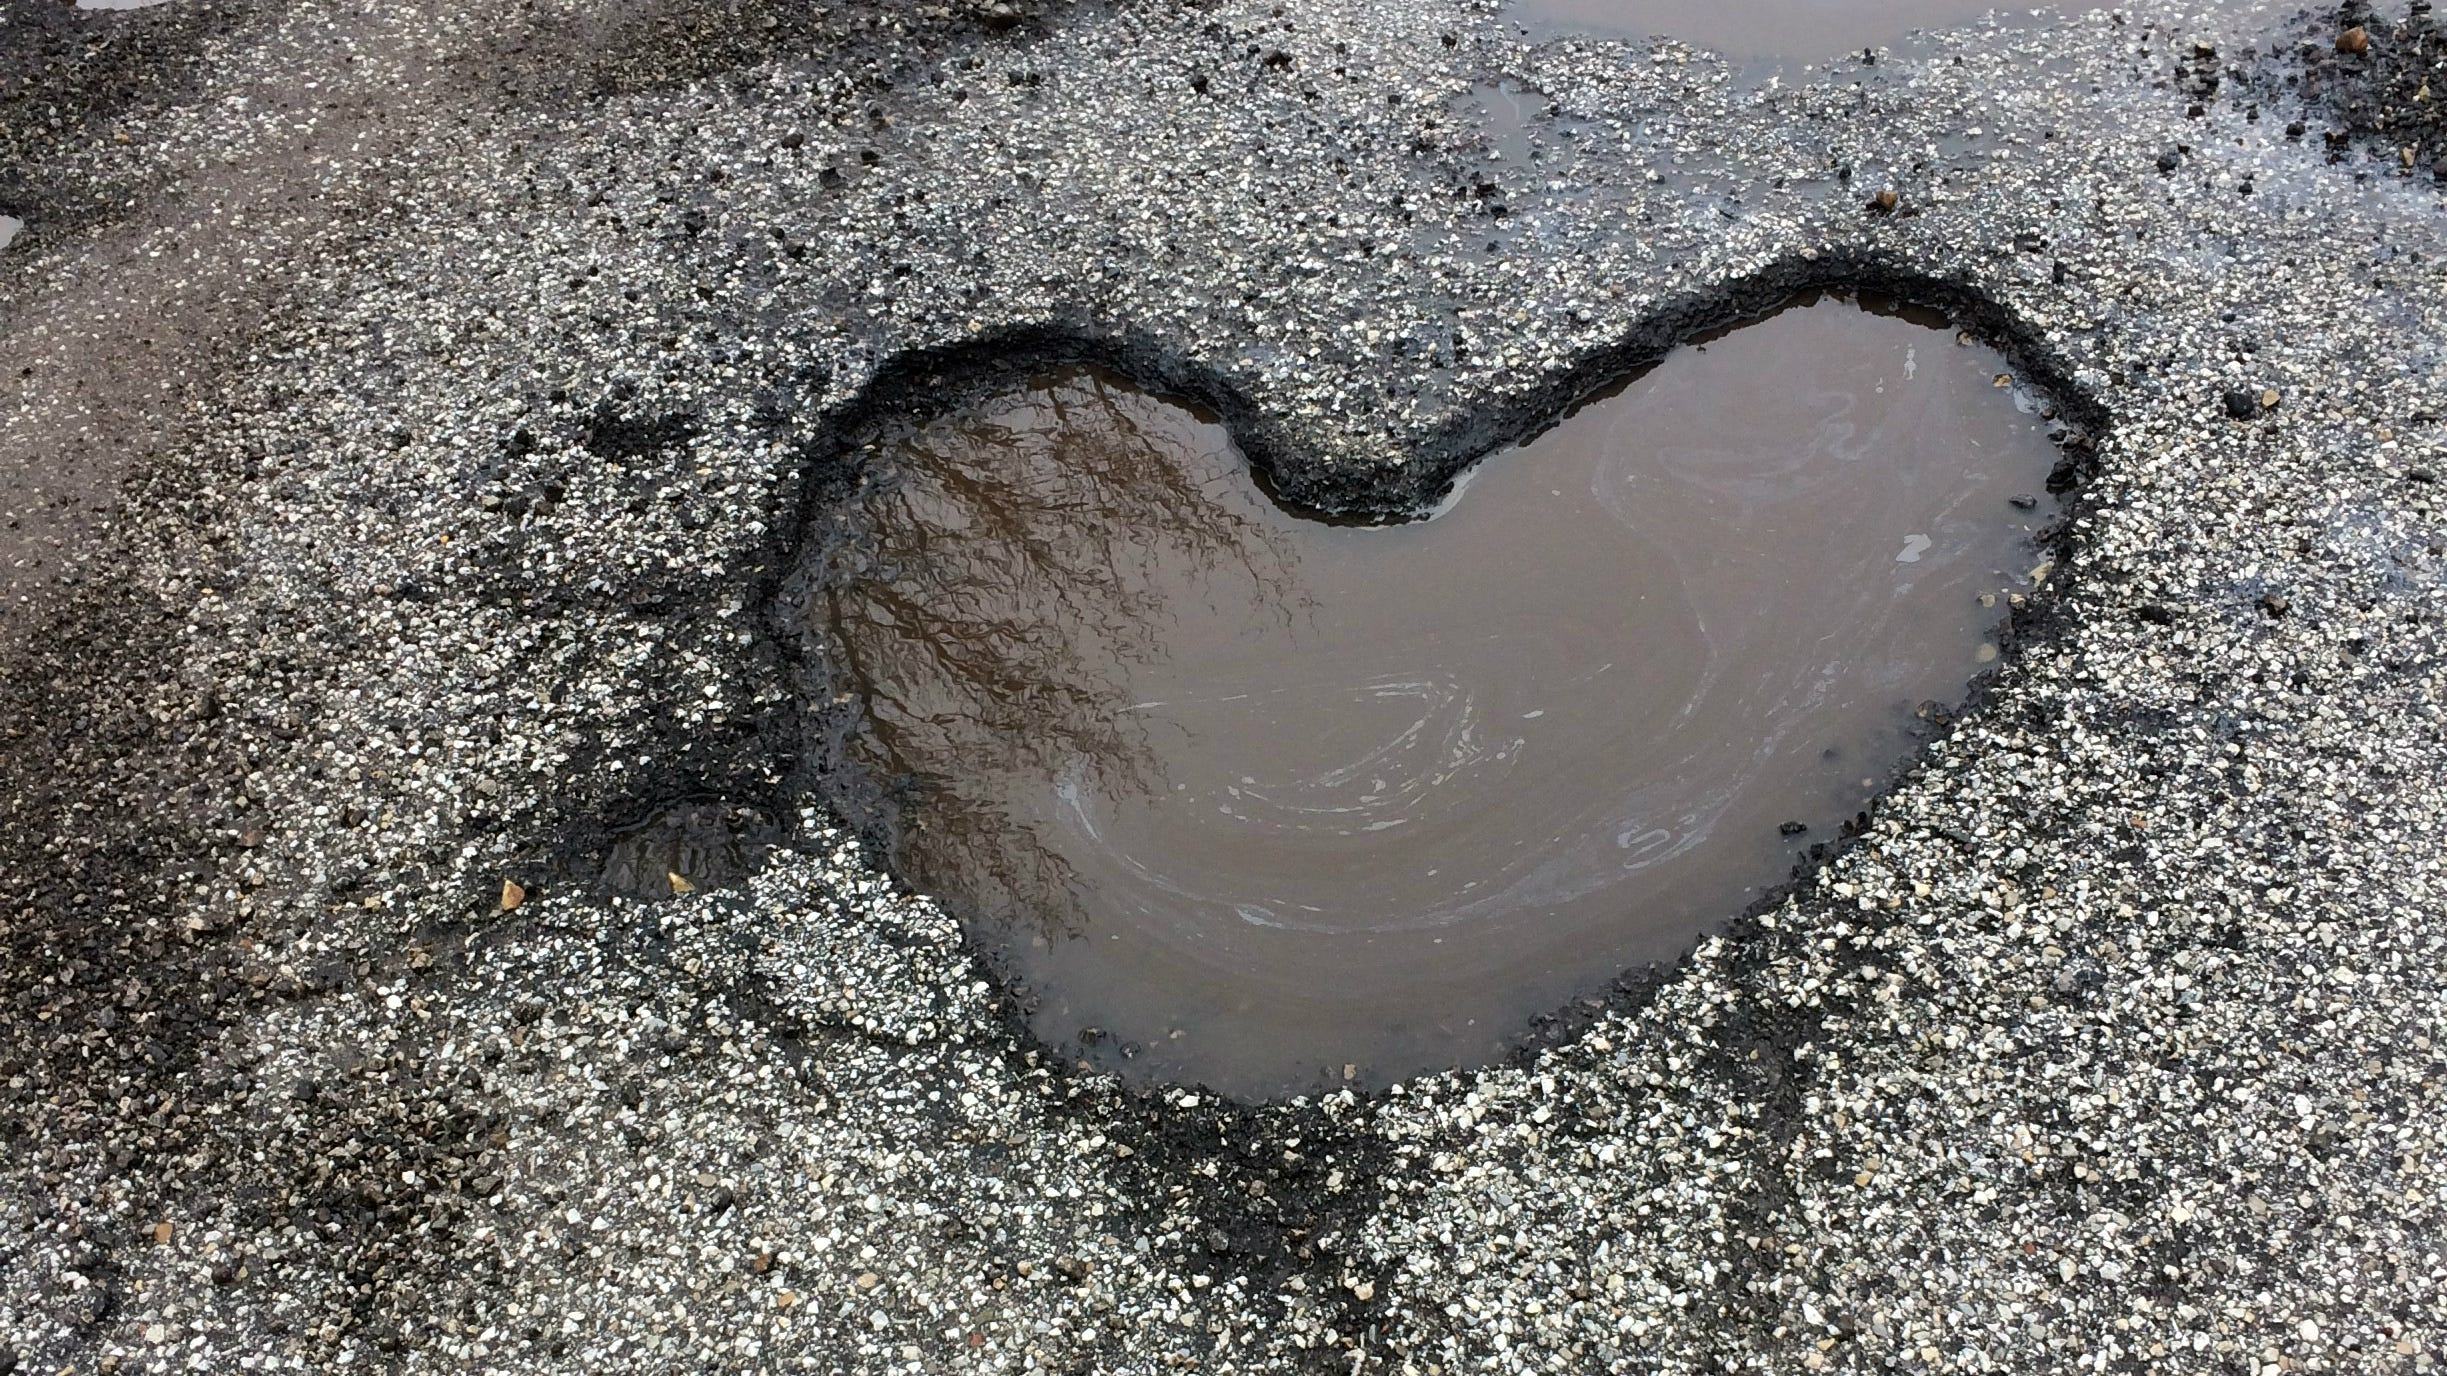 Man discovers perfect heart-shaped pothole for Valentine's Day